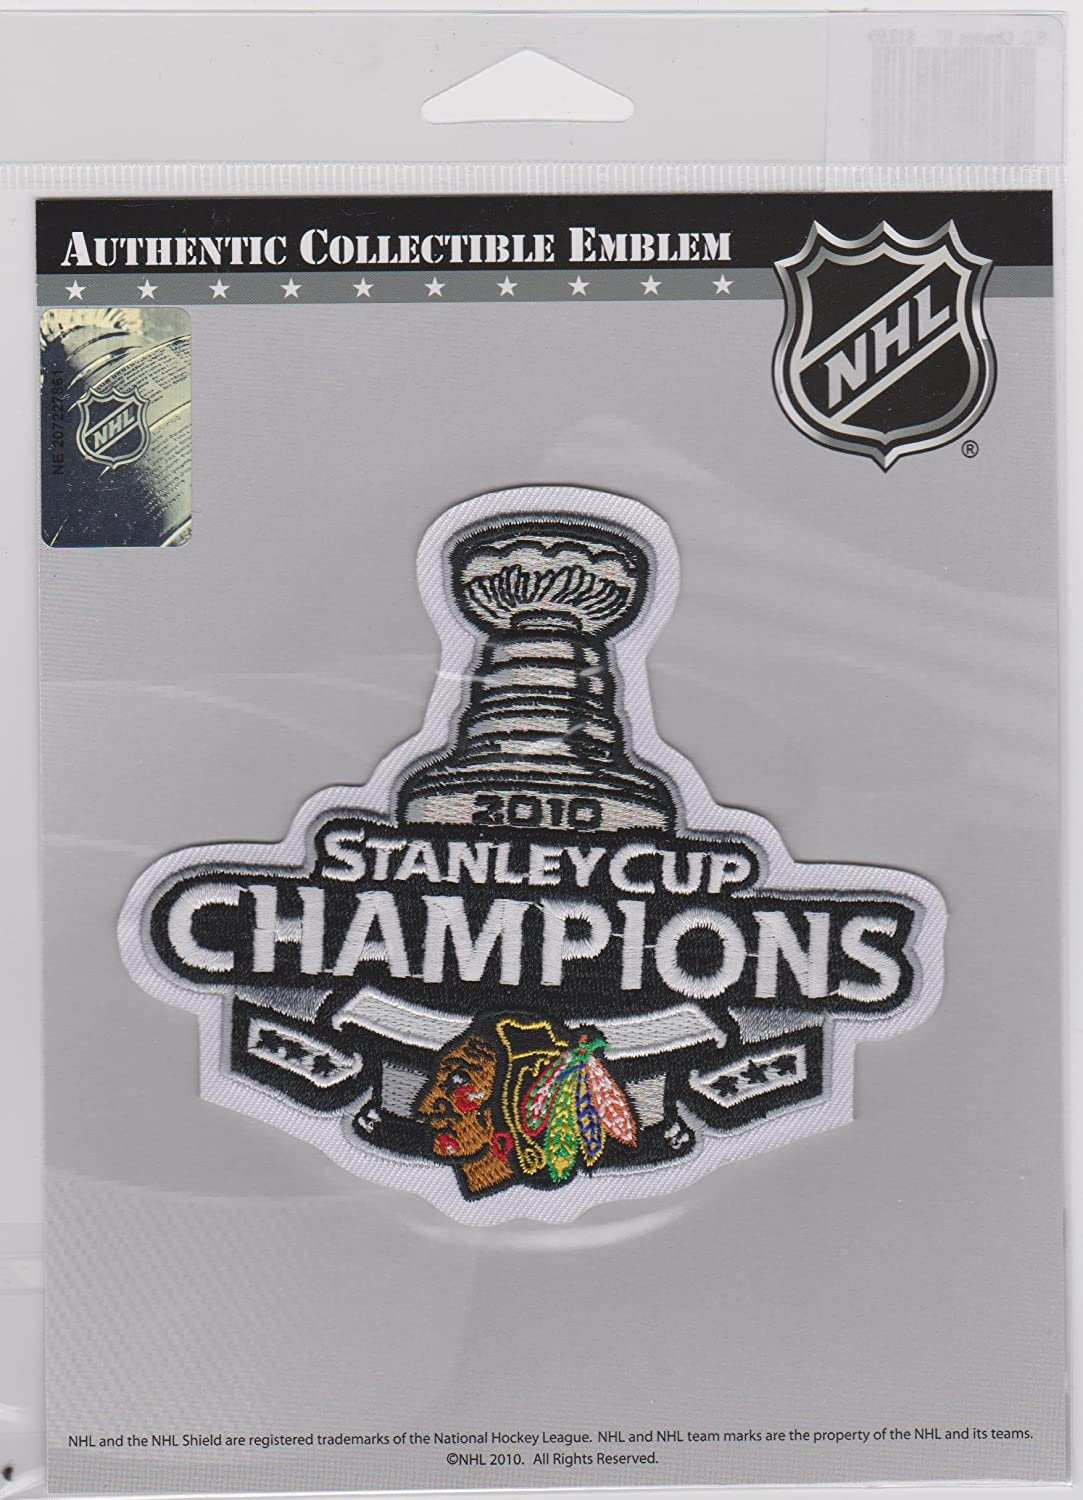 2010 STANLEY CUP CHAMPIONS CHICAGO BLACKHAWKS JERSEY PATCH